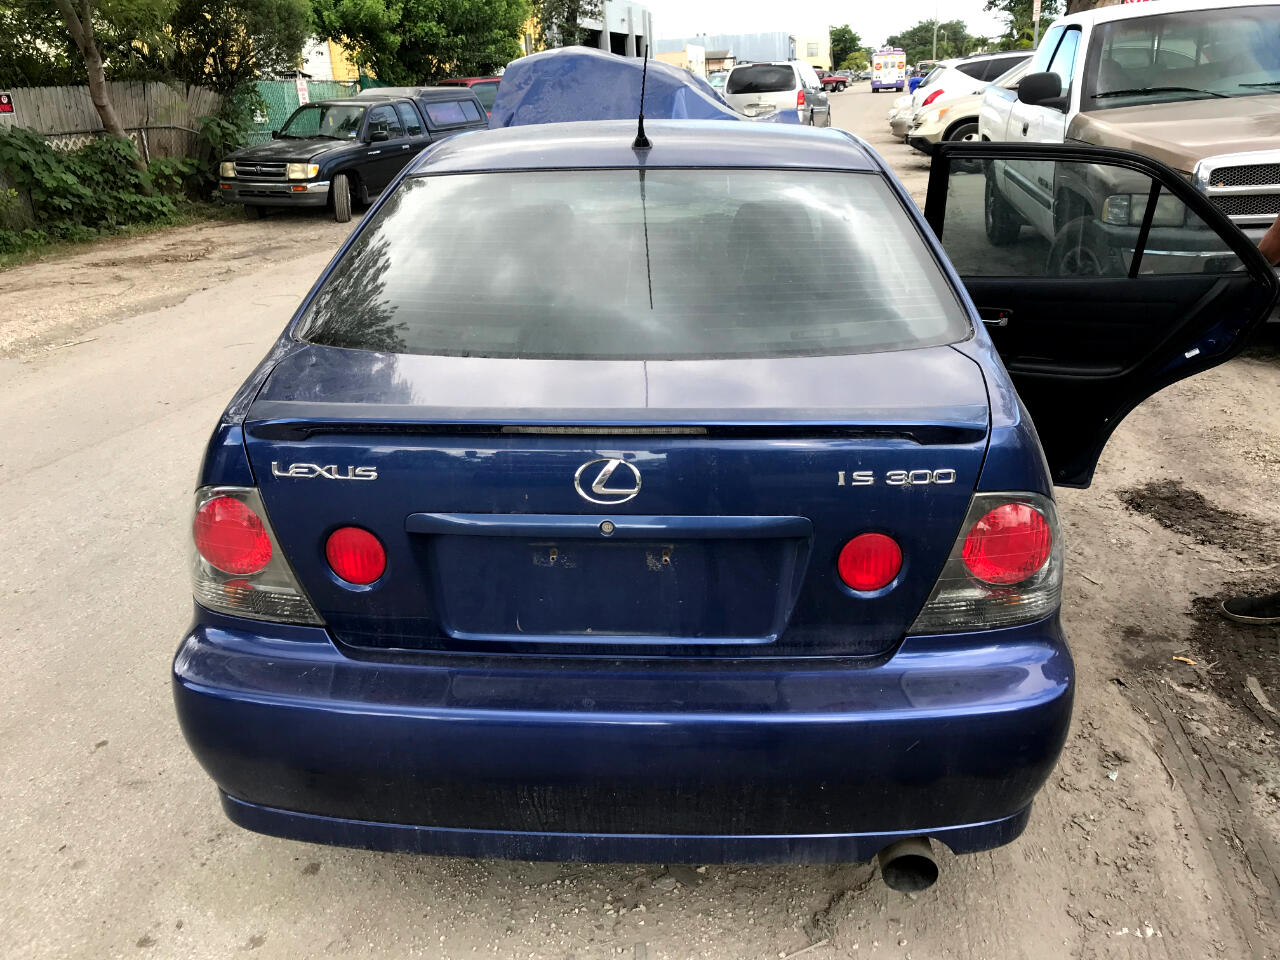 2003 Lexus IS 300 5-Speed Sedan